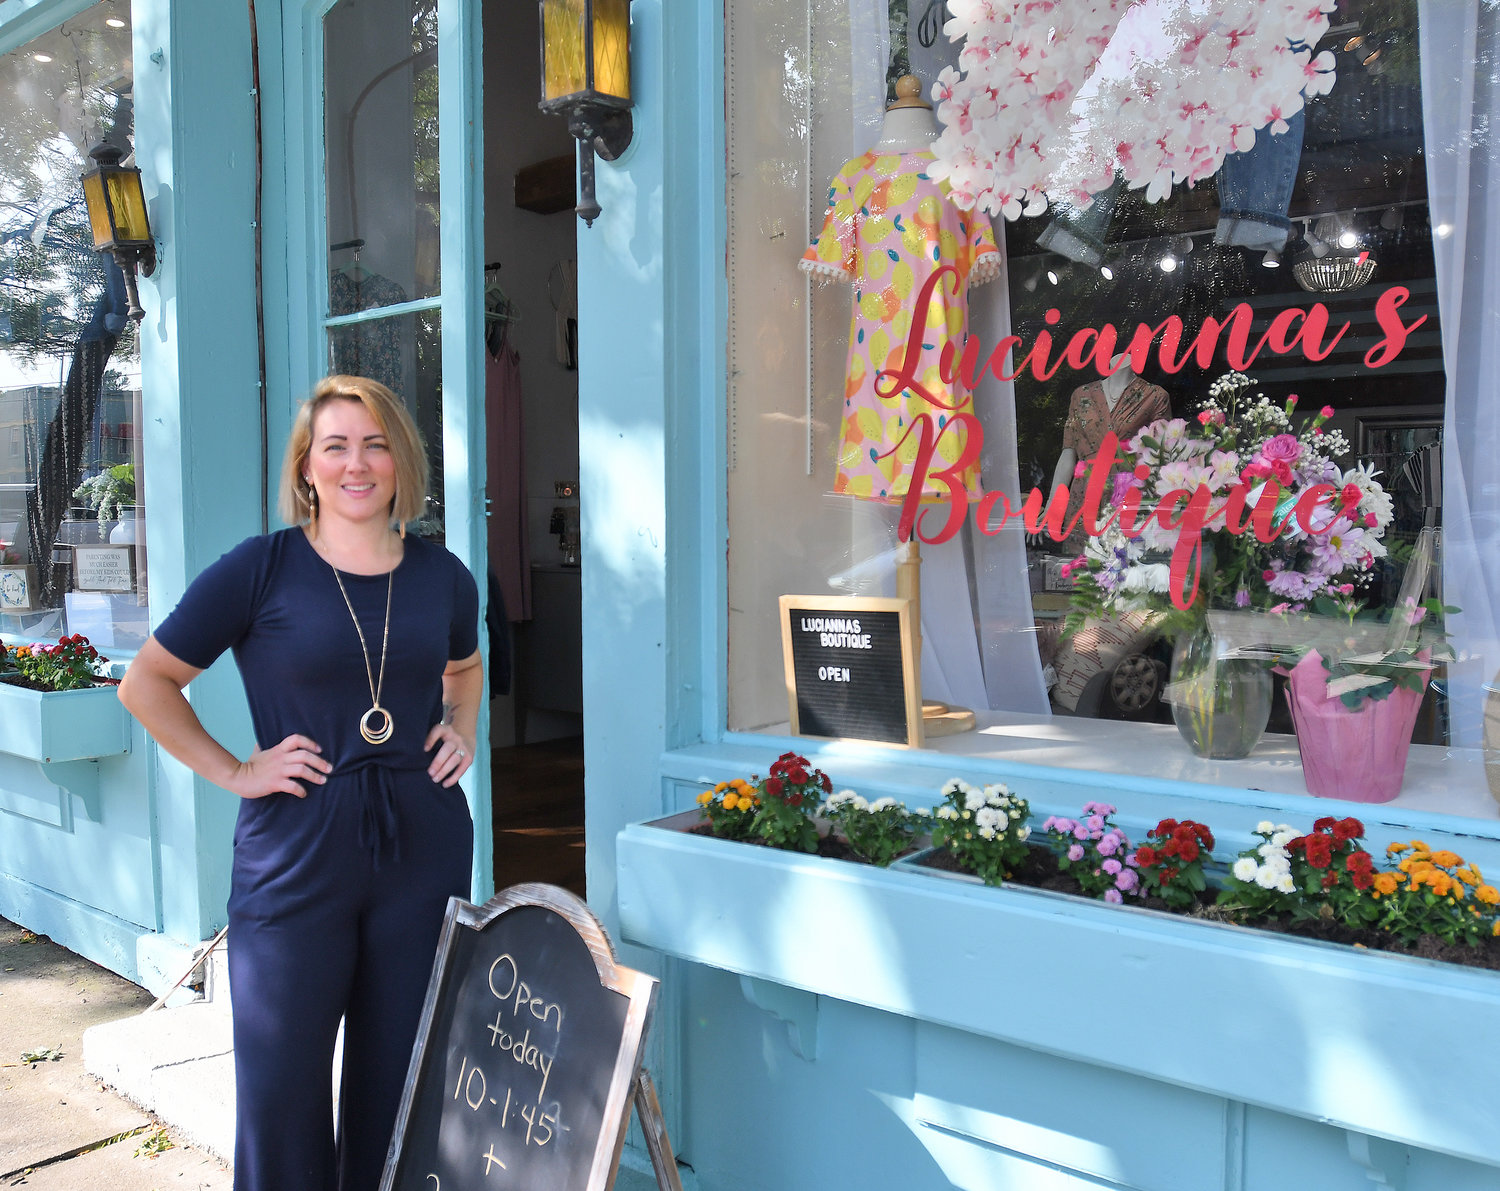 OPEN FOR BUSINESS — Noel Visalli, owner of Lucianna's Boutique, stands outside her location at 13 W. Park Row in Clinton.  The shop will specialize in women's and children's clothing, as well as housewares and homemade goods by local artisans.